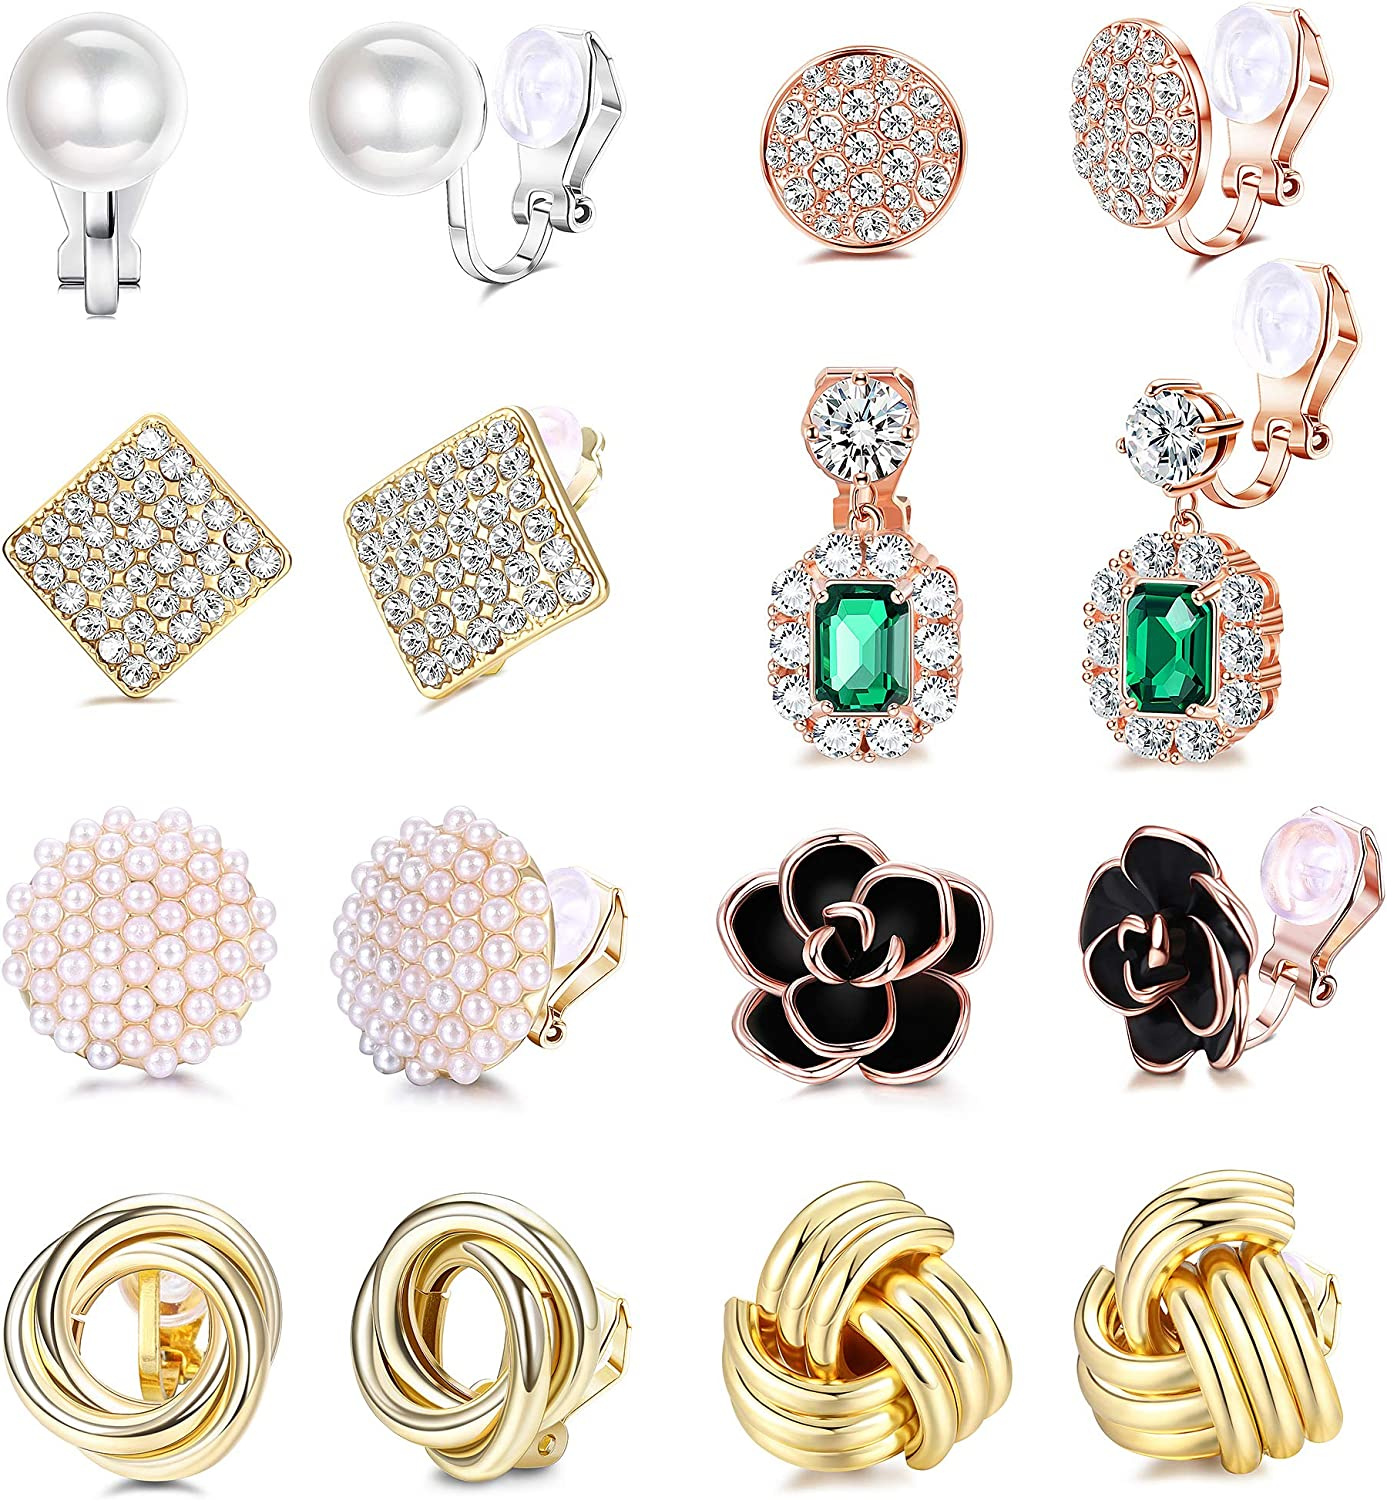 LOLIAS 8 Pairs Clip NEW before selling ☆ Earrings Sets CZ Simul Women Max 44% OFF Flower Rose for